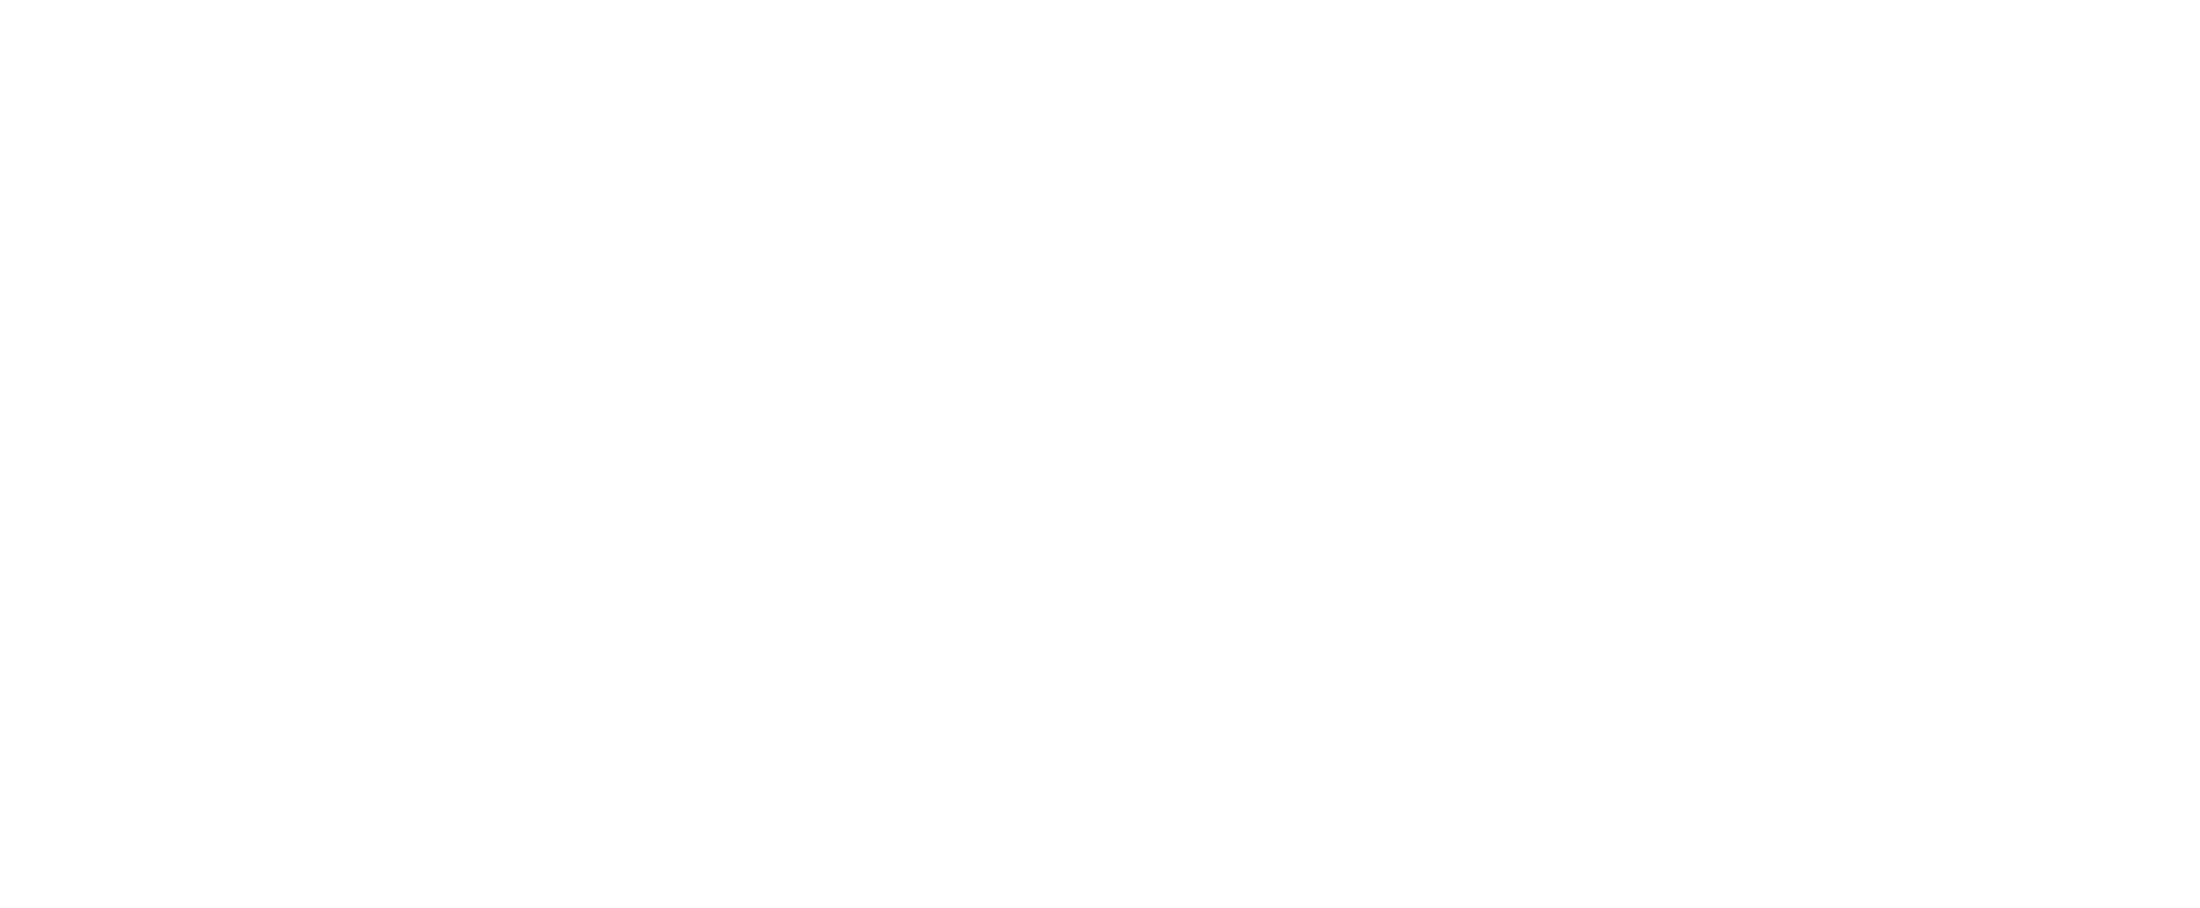 Vitracc | Le centre automobile